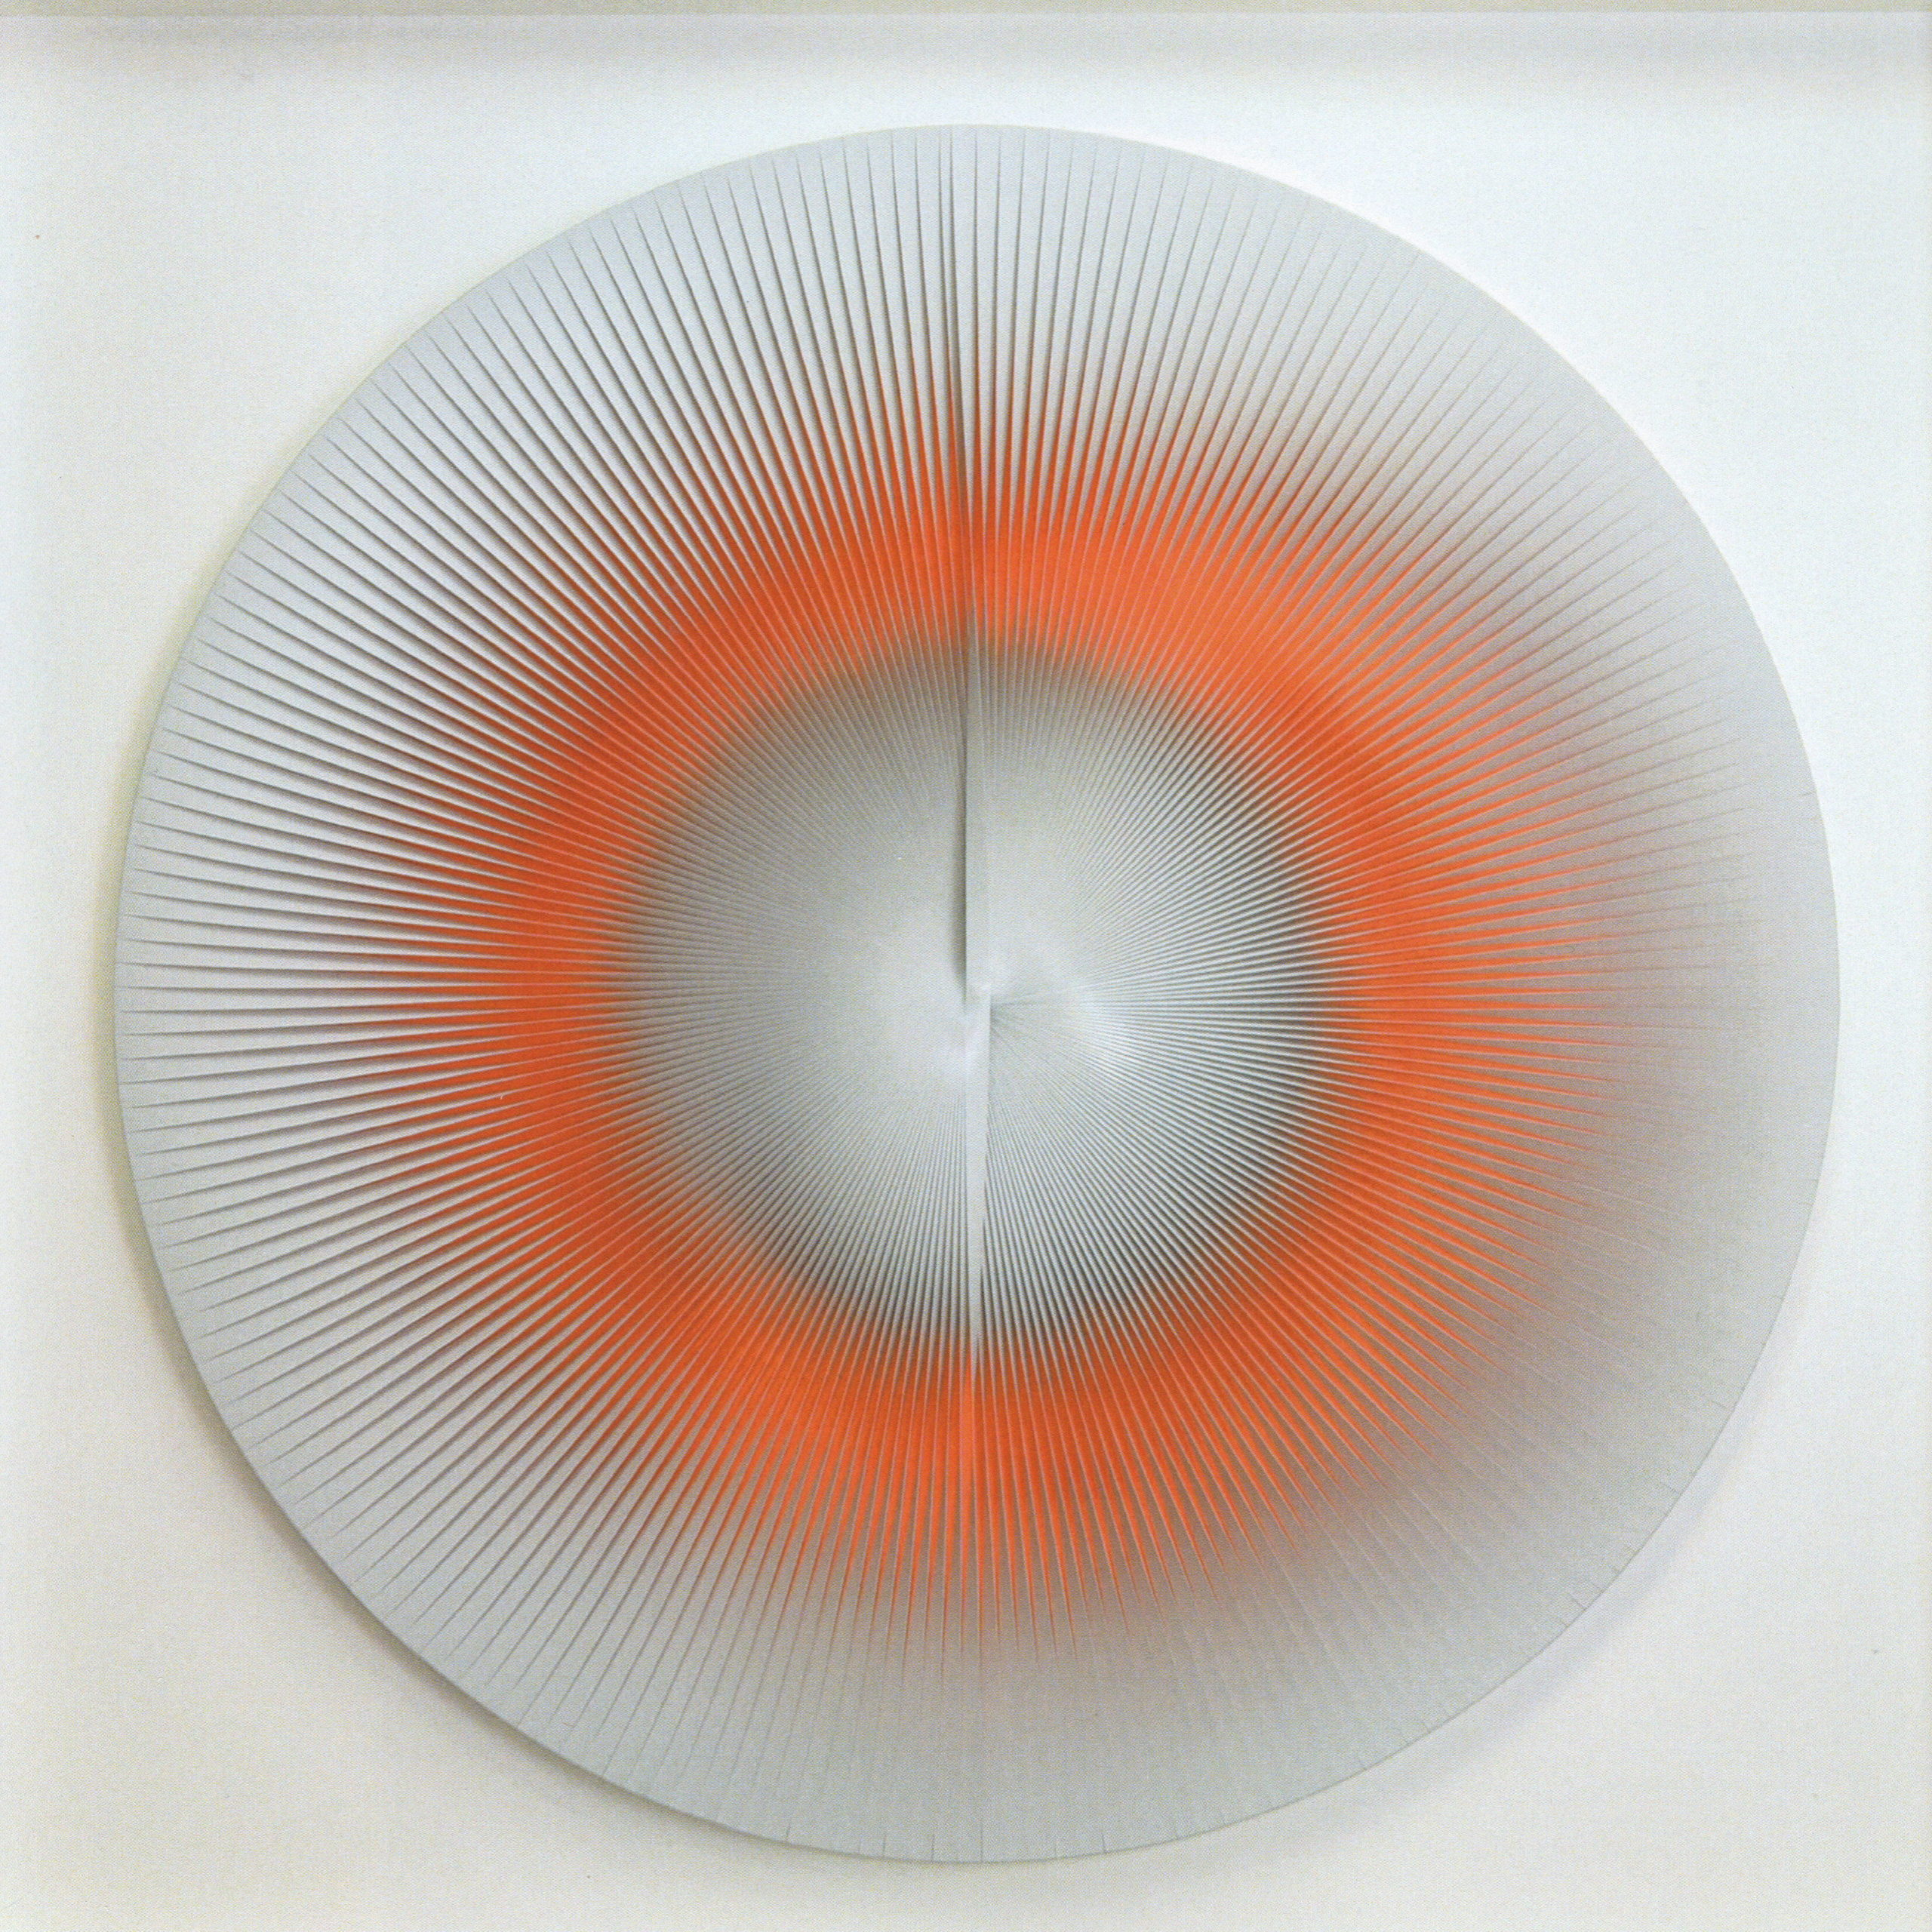 Variable round image, 2005